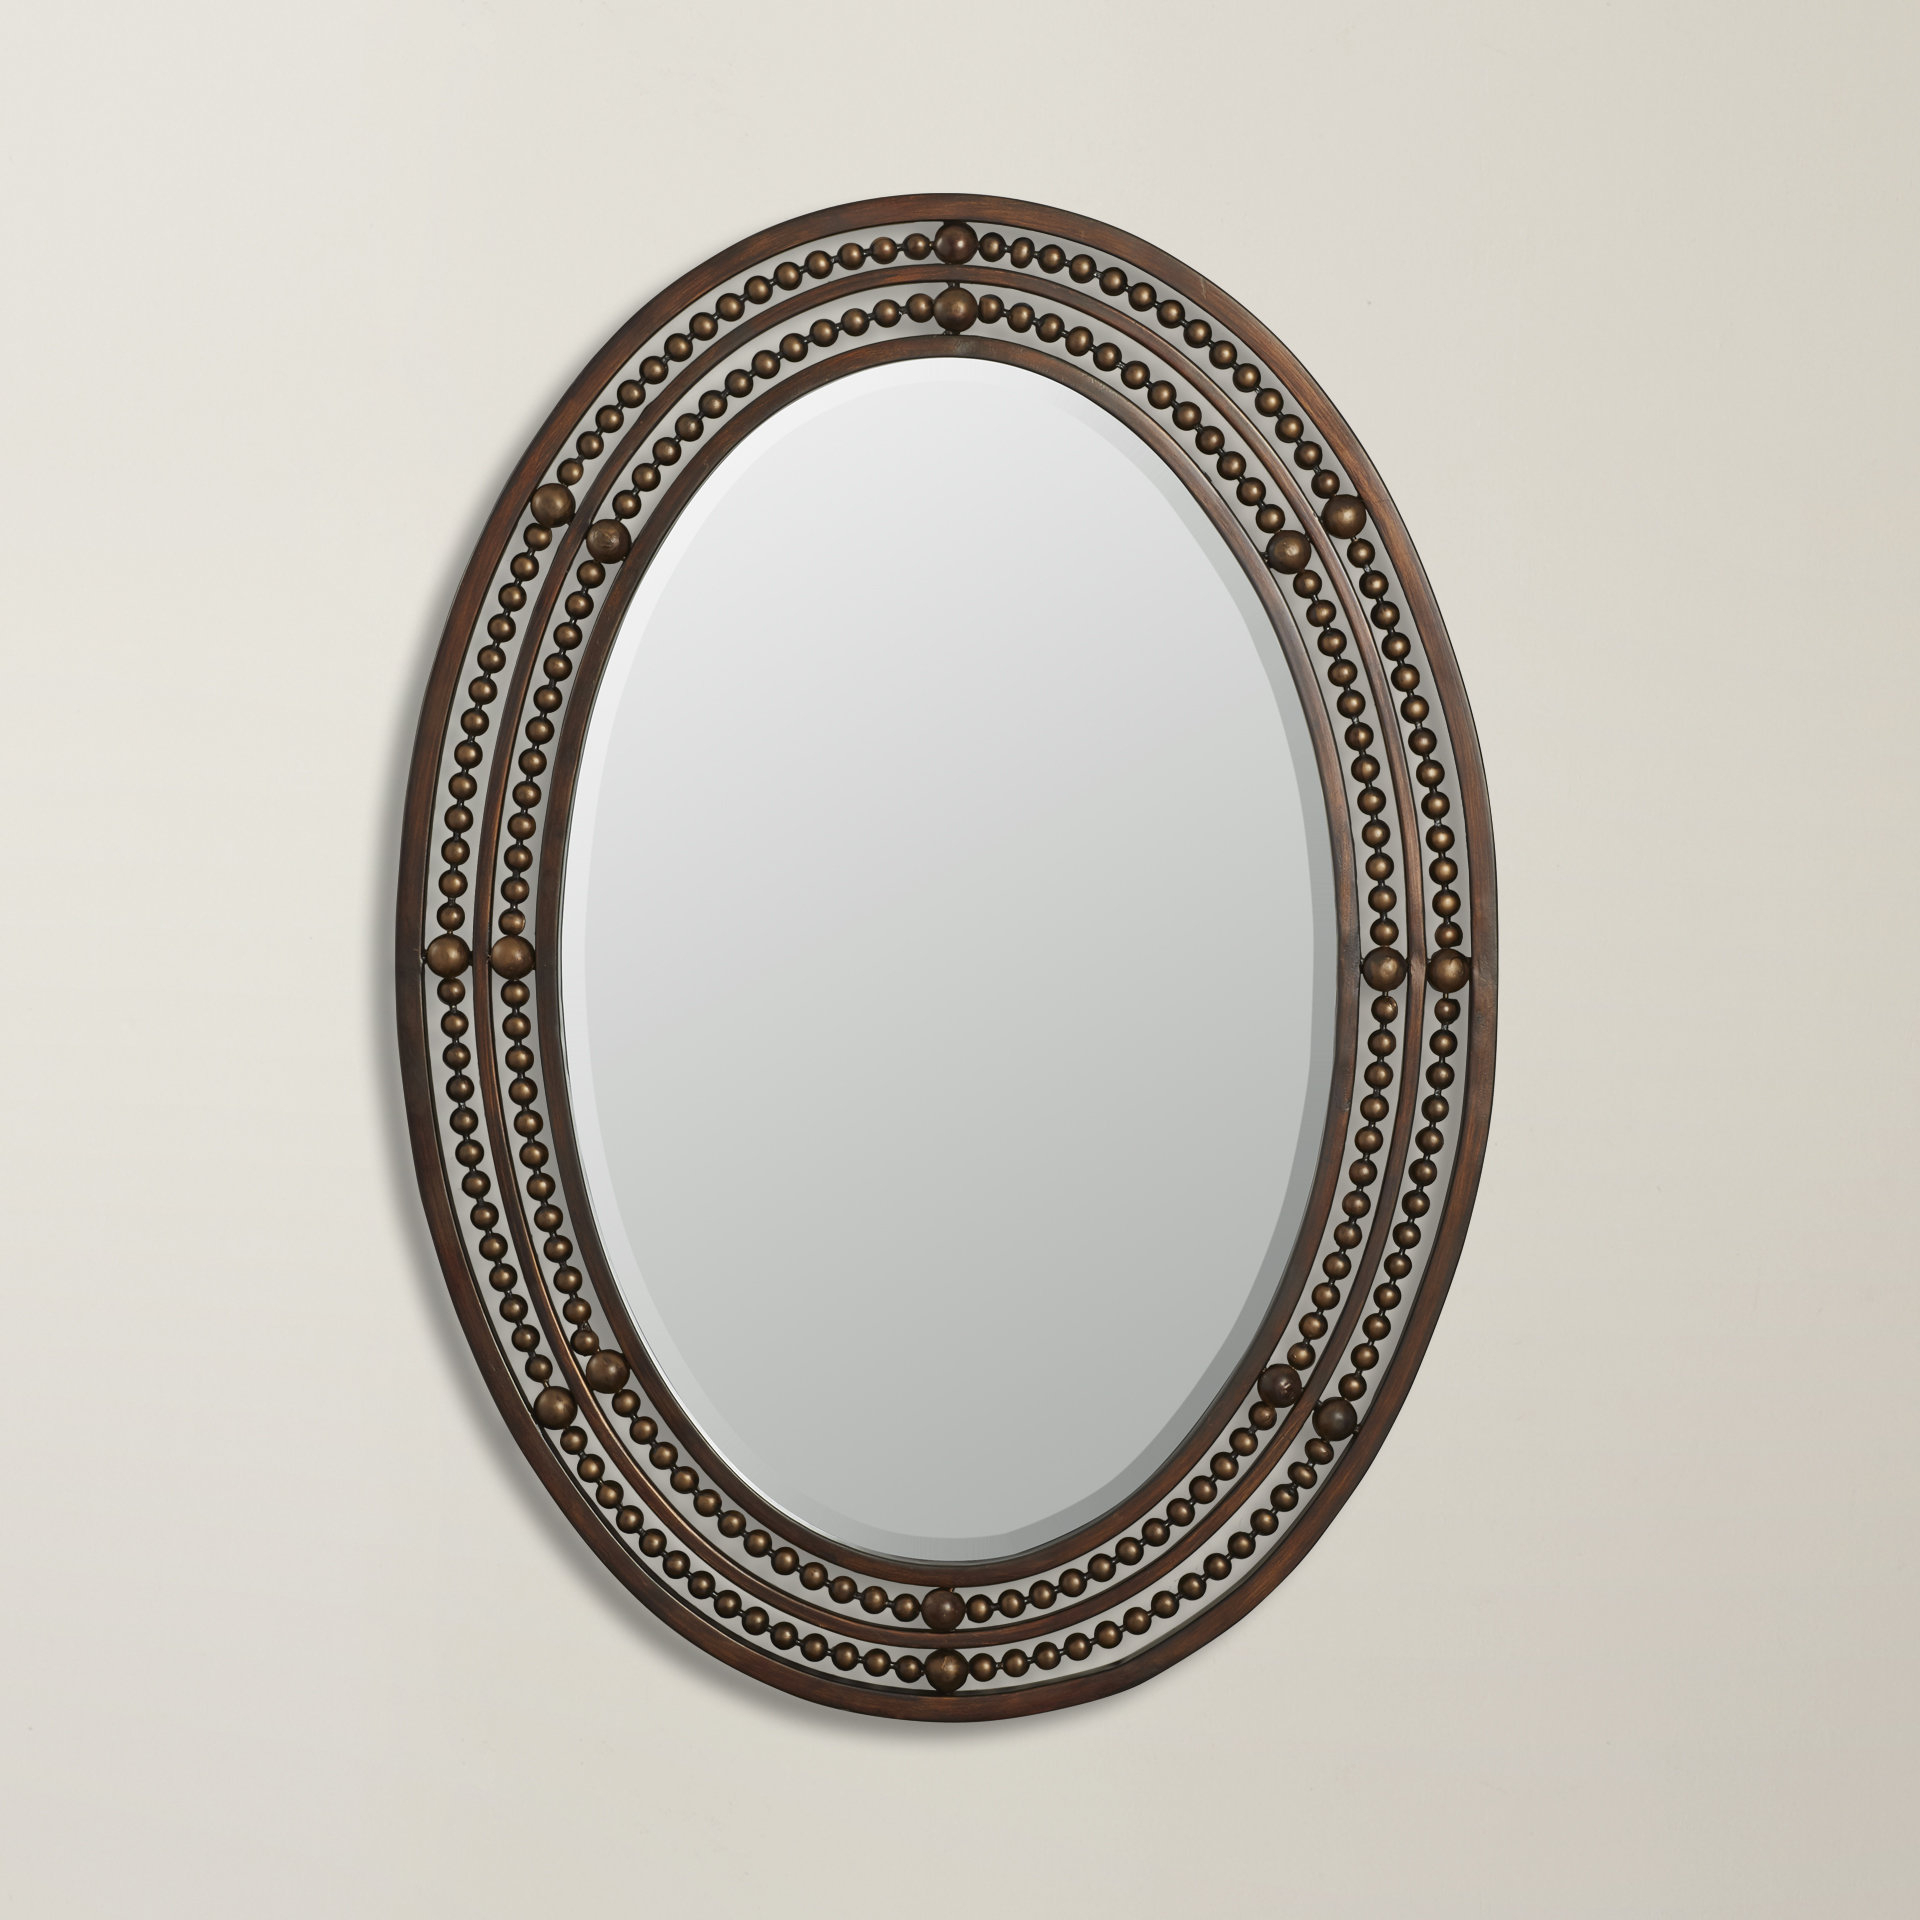 Most Recent Leeper Oval Wall Mirror Intended For Glen View Beaded Oval Traditional Accent Mirrors (View 13 of 20)